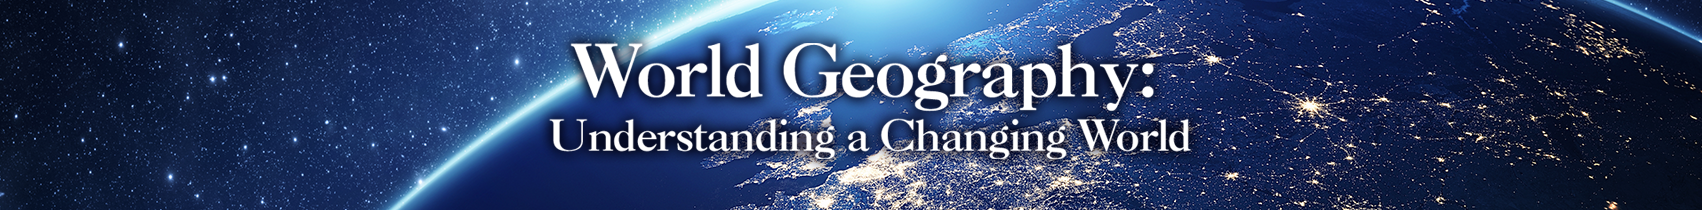 ABC-CLIO Solutions - World Geography: Understanding a Changing World